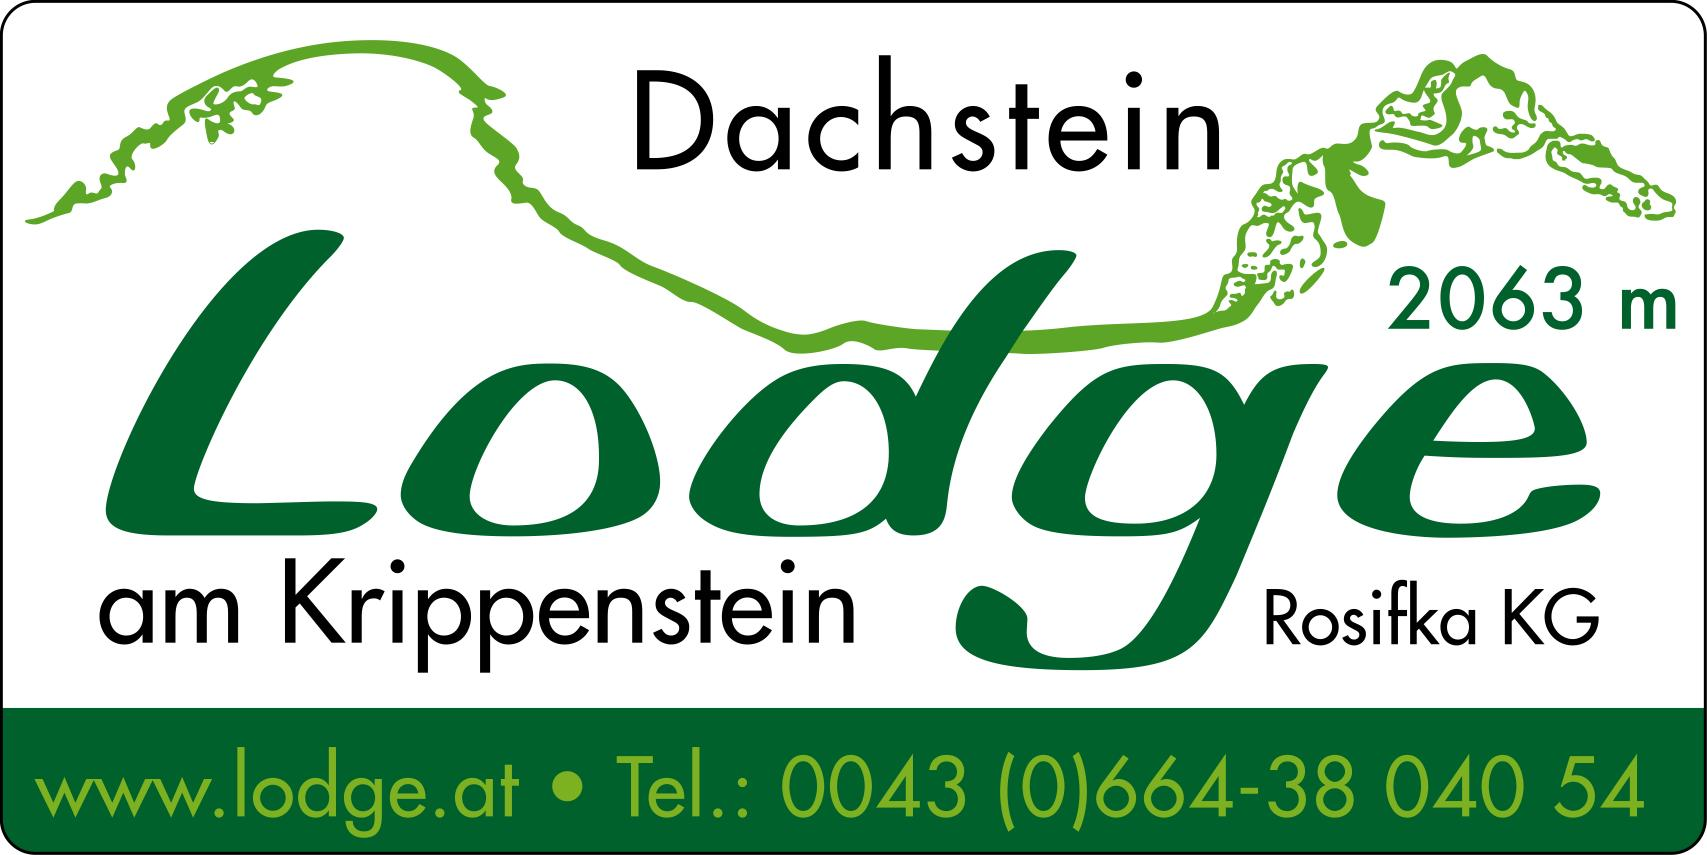 Lodge am Krippenstein